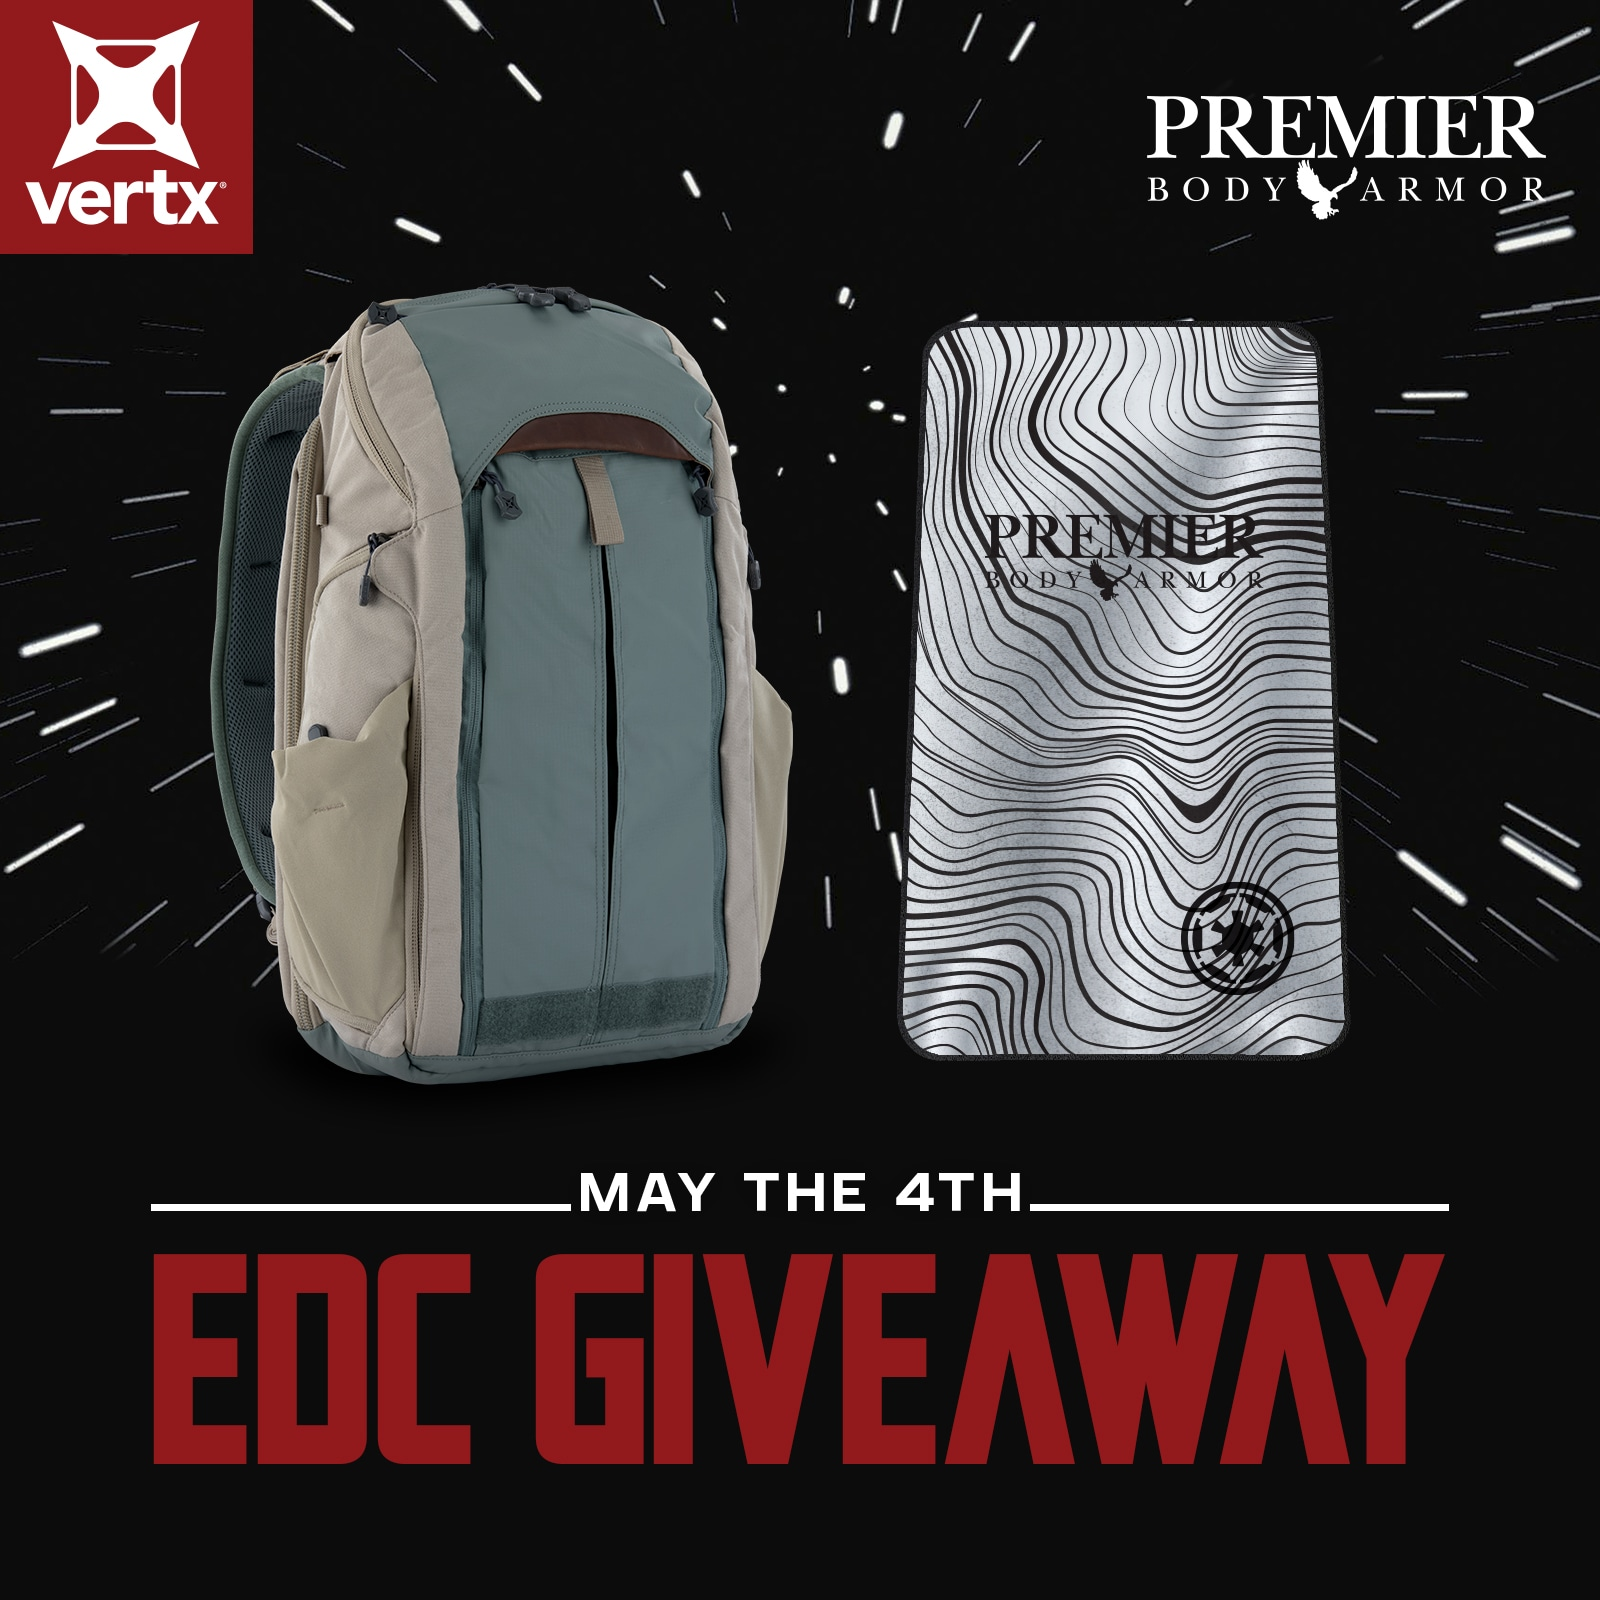 Vertx Backpack + Armor Plate - May the 4th EDC Giveaway Giveaway Image